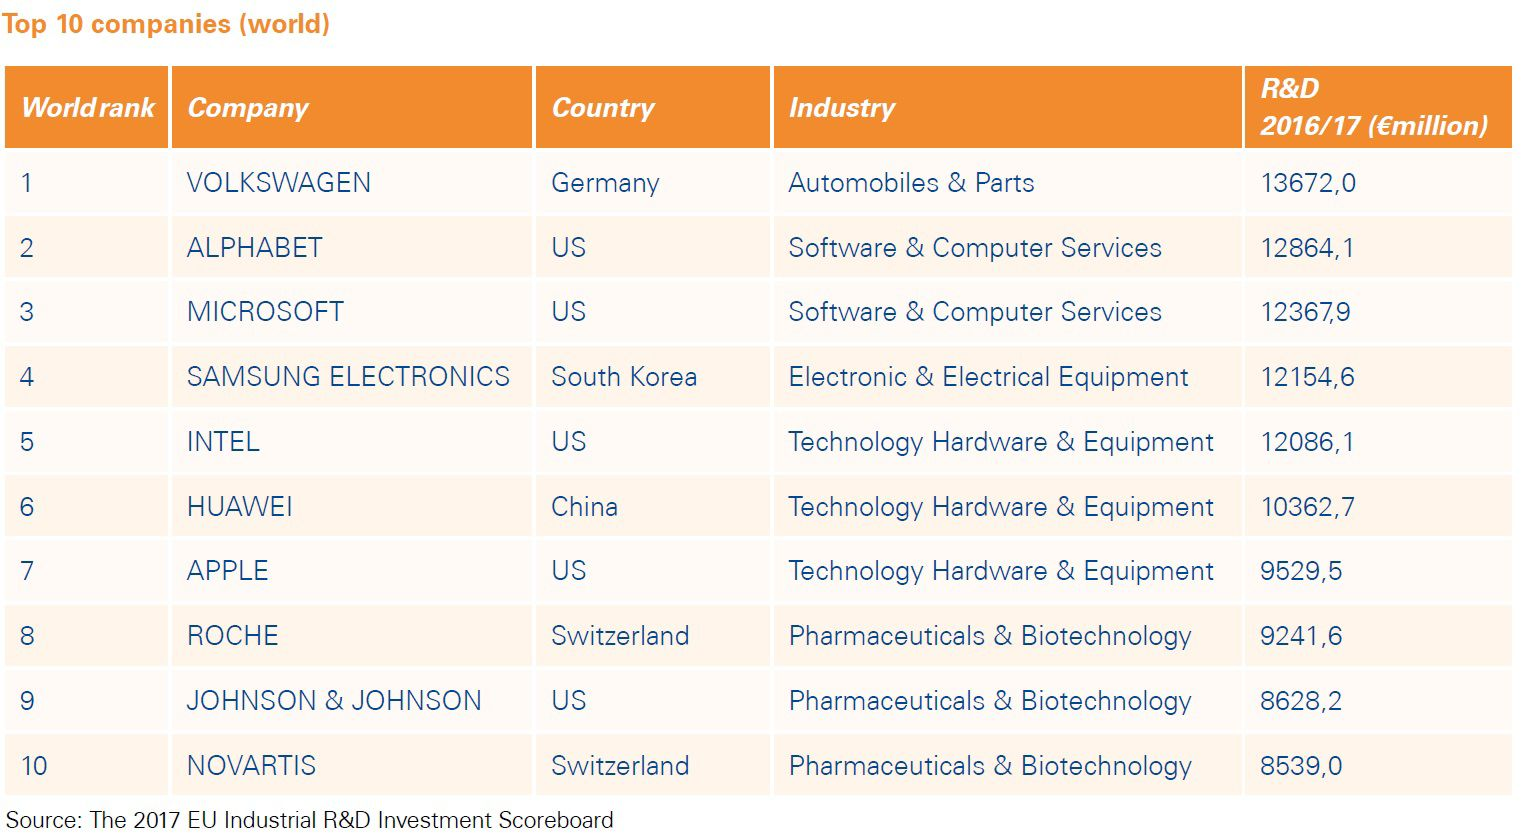 Table of Top 10 companies in the World R&D sector